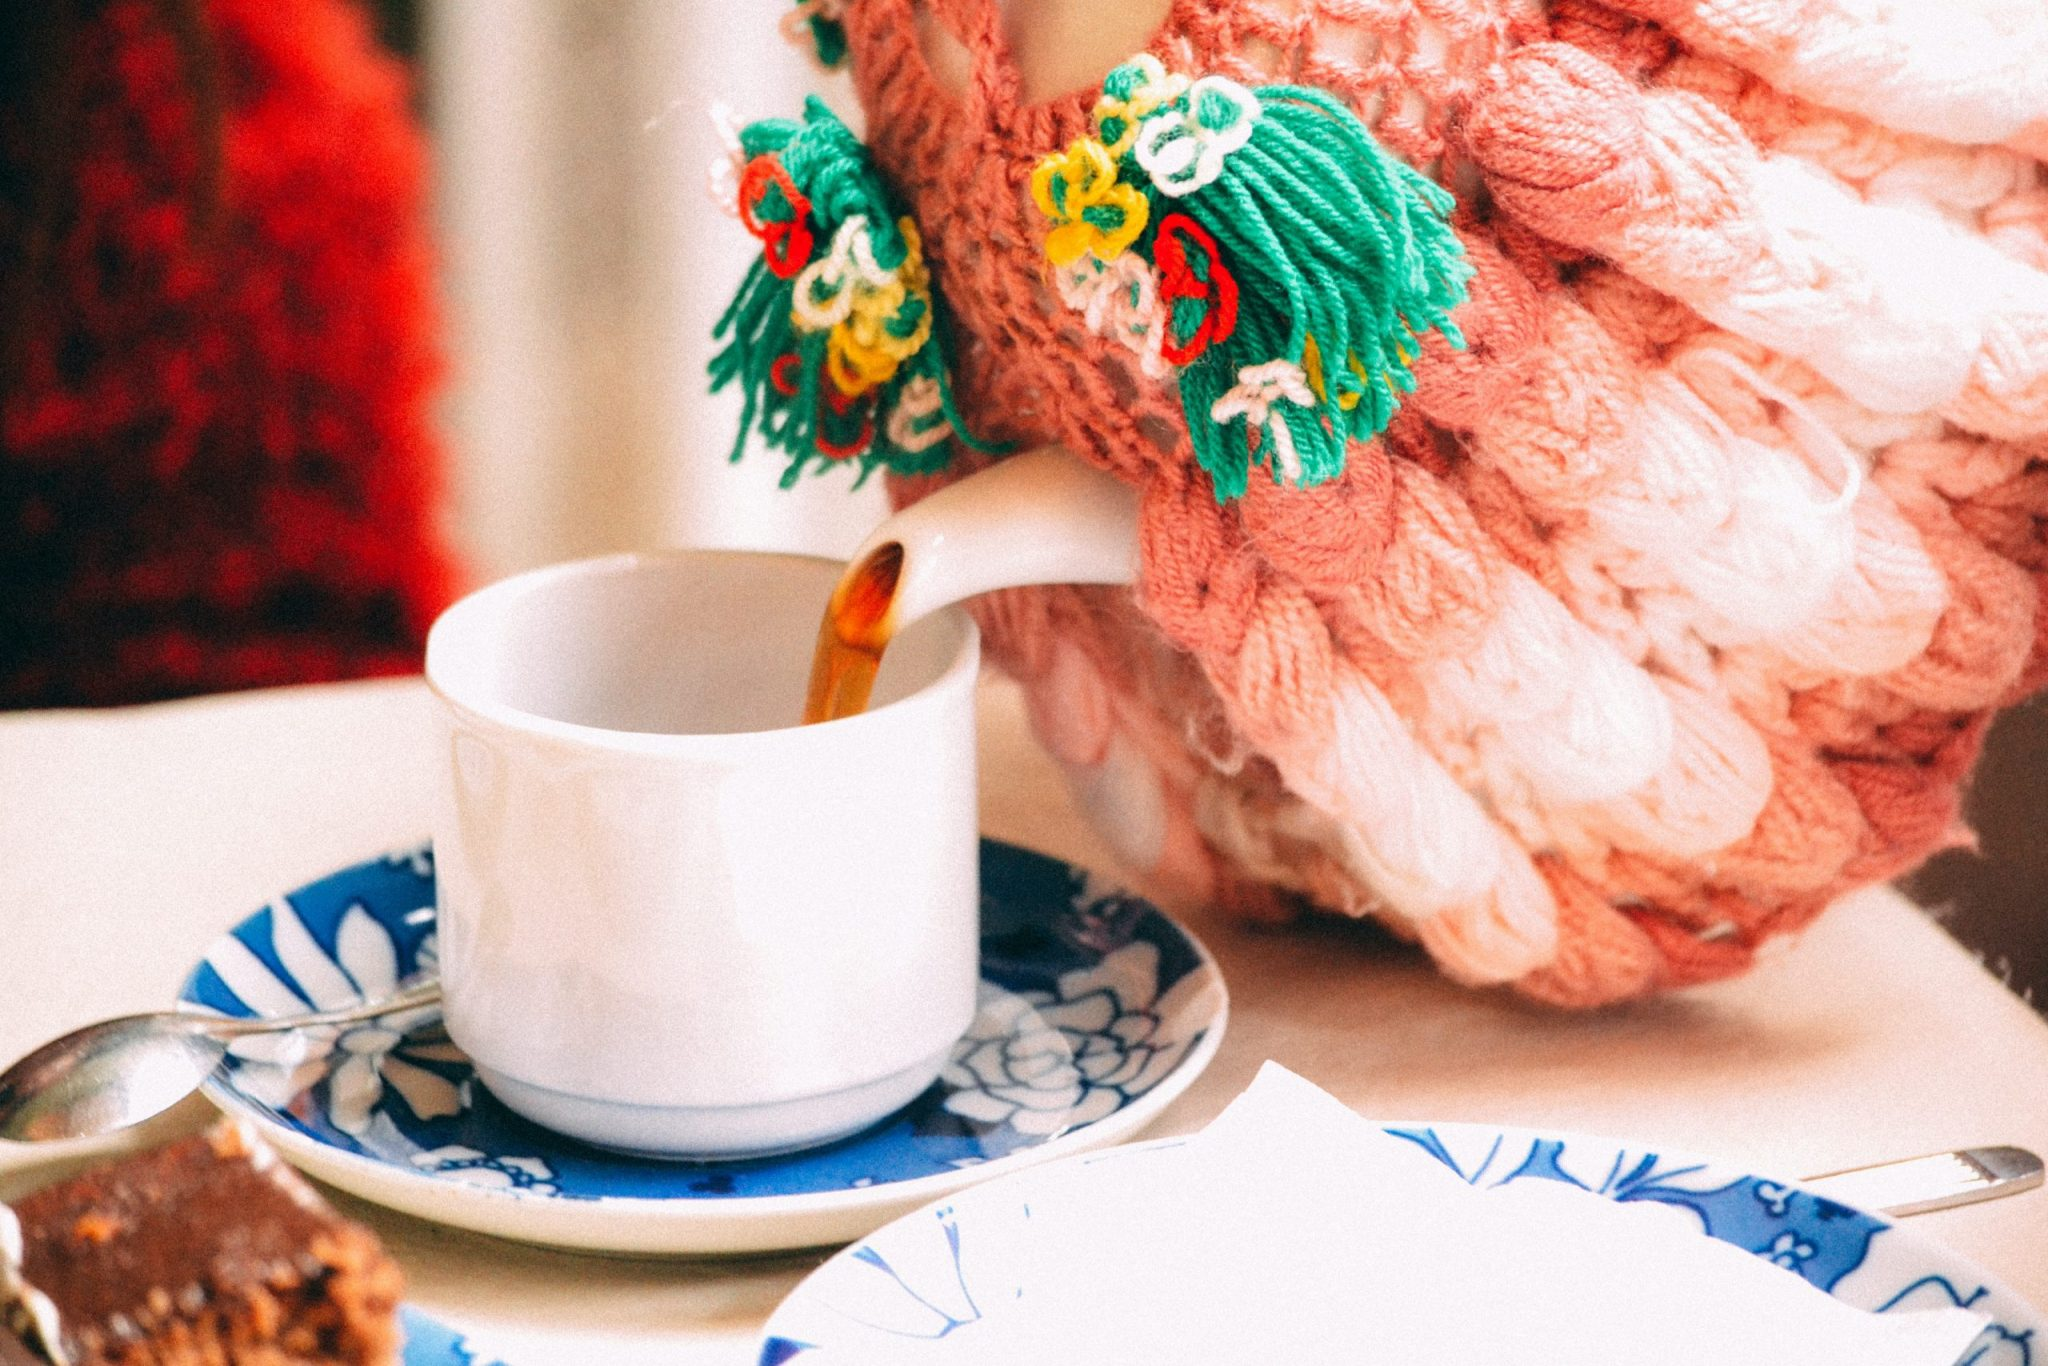 Tea pot with crochet covering